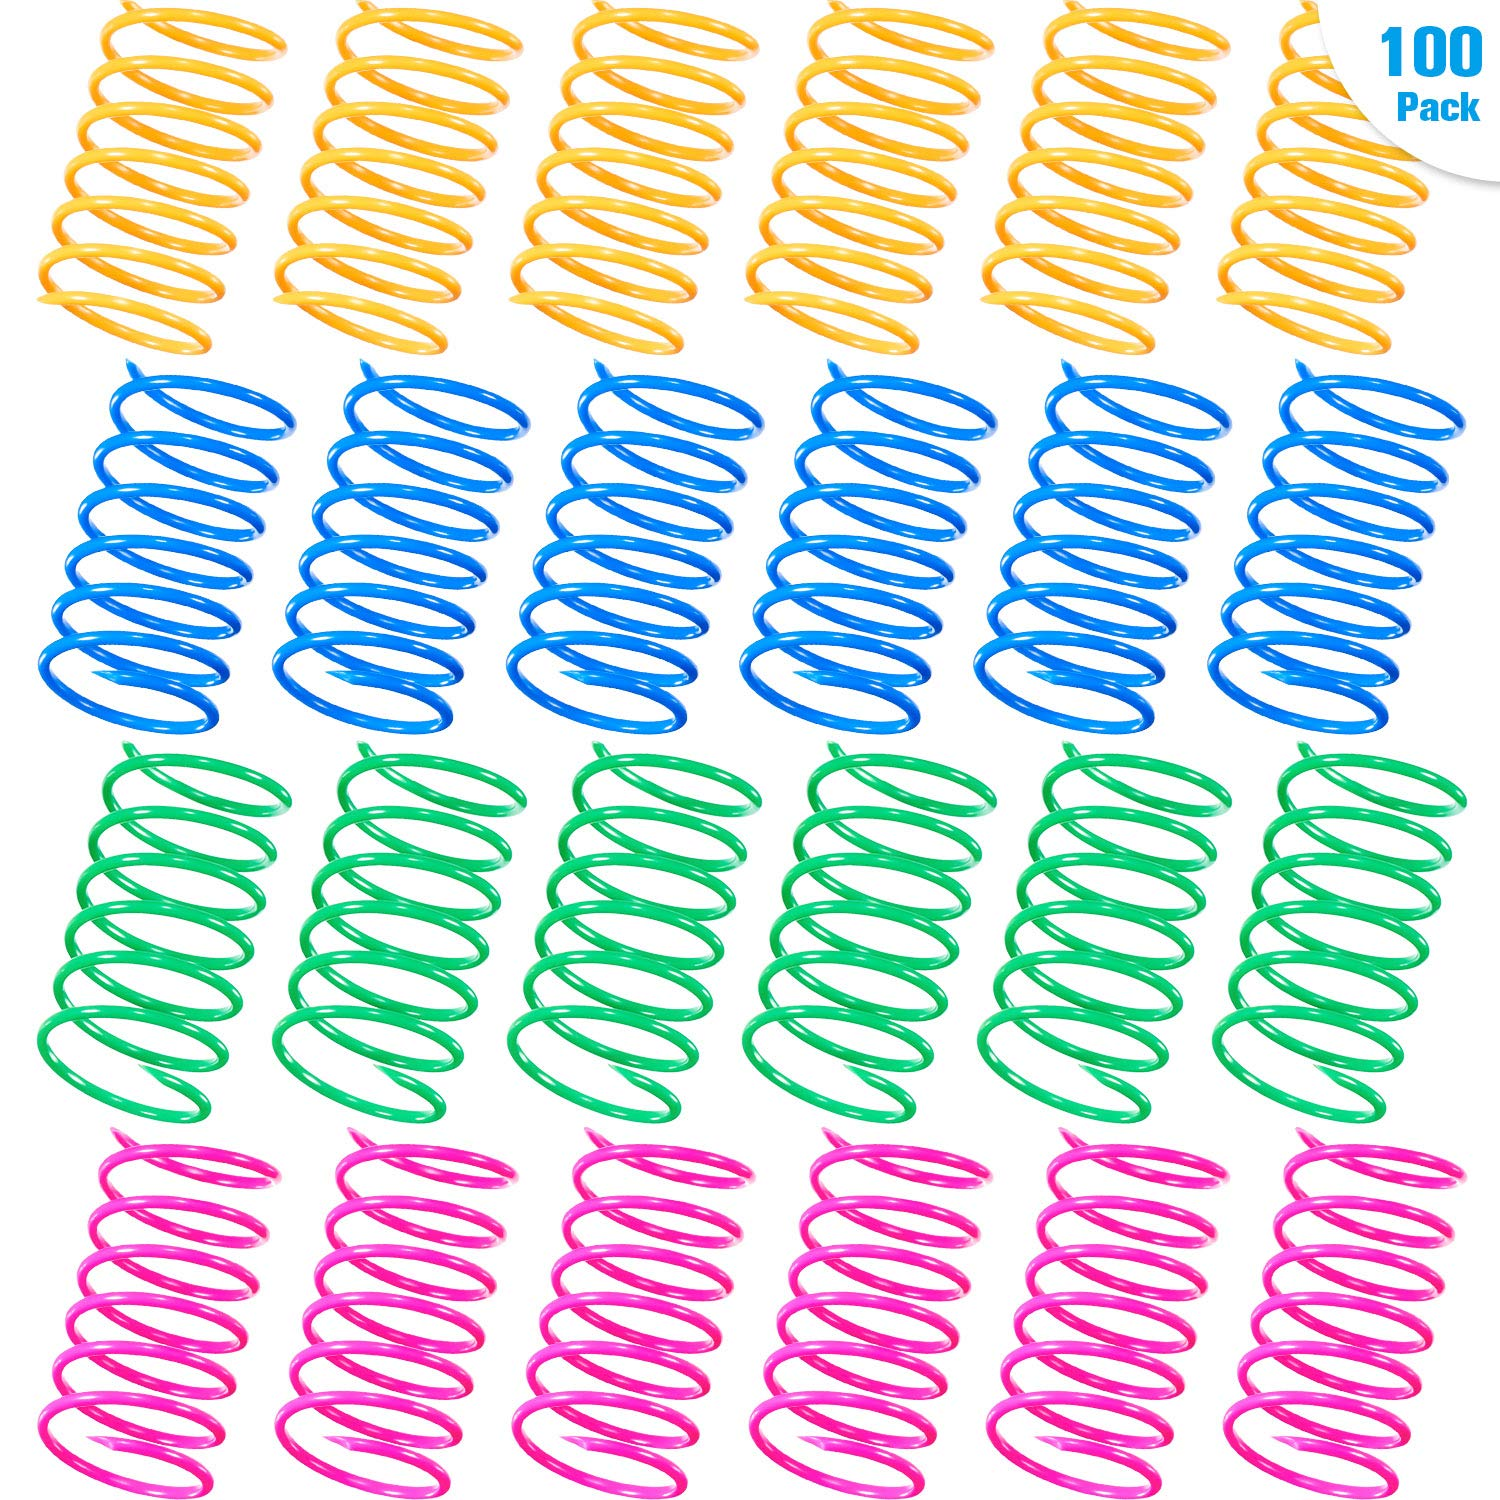 Gejoy 100 Pieces Cat Spring Toys Wide Colorful Springs Cat Toy BPA-free Plastic Coil Spiral Springs Pet Interactive Toys for Cats Kittens Swatting